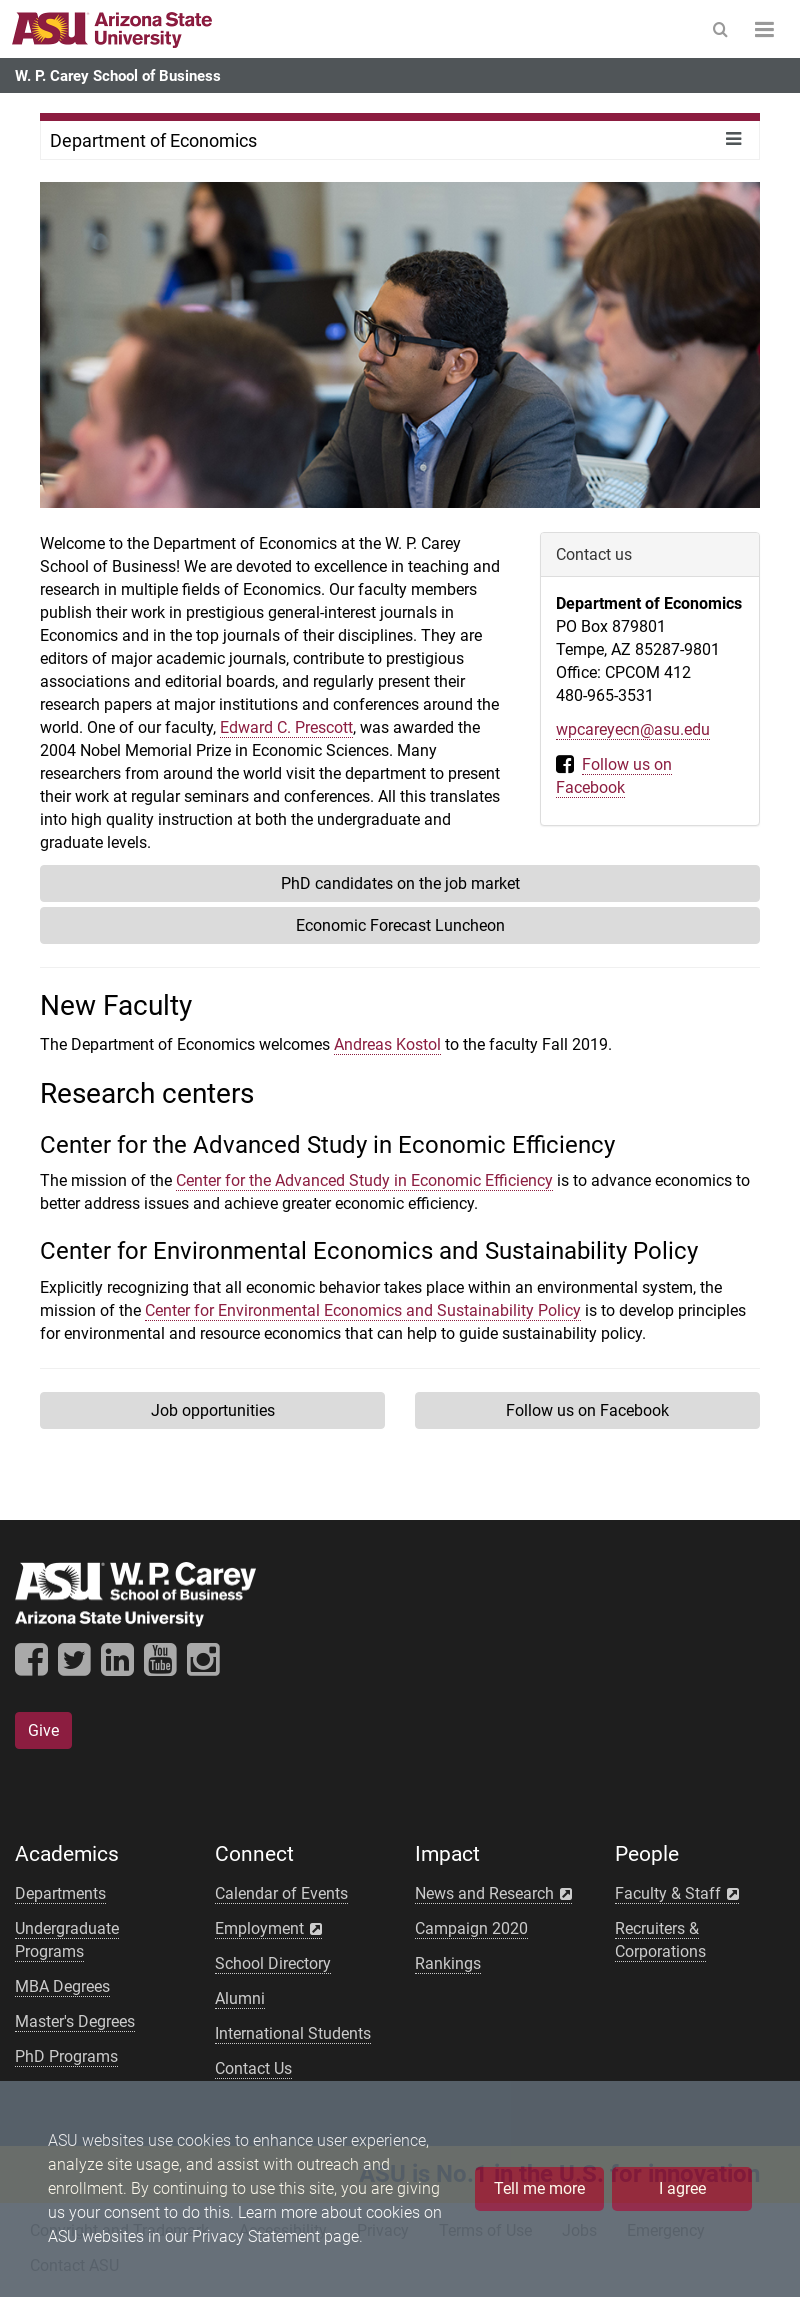 Arizona State University W. P. Carey School of Business PhD in Economics